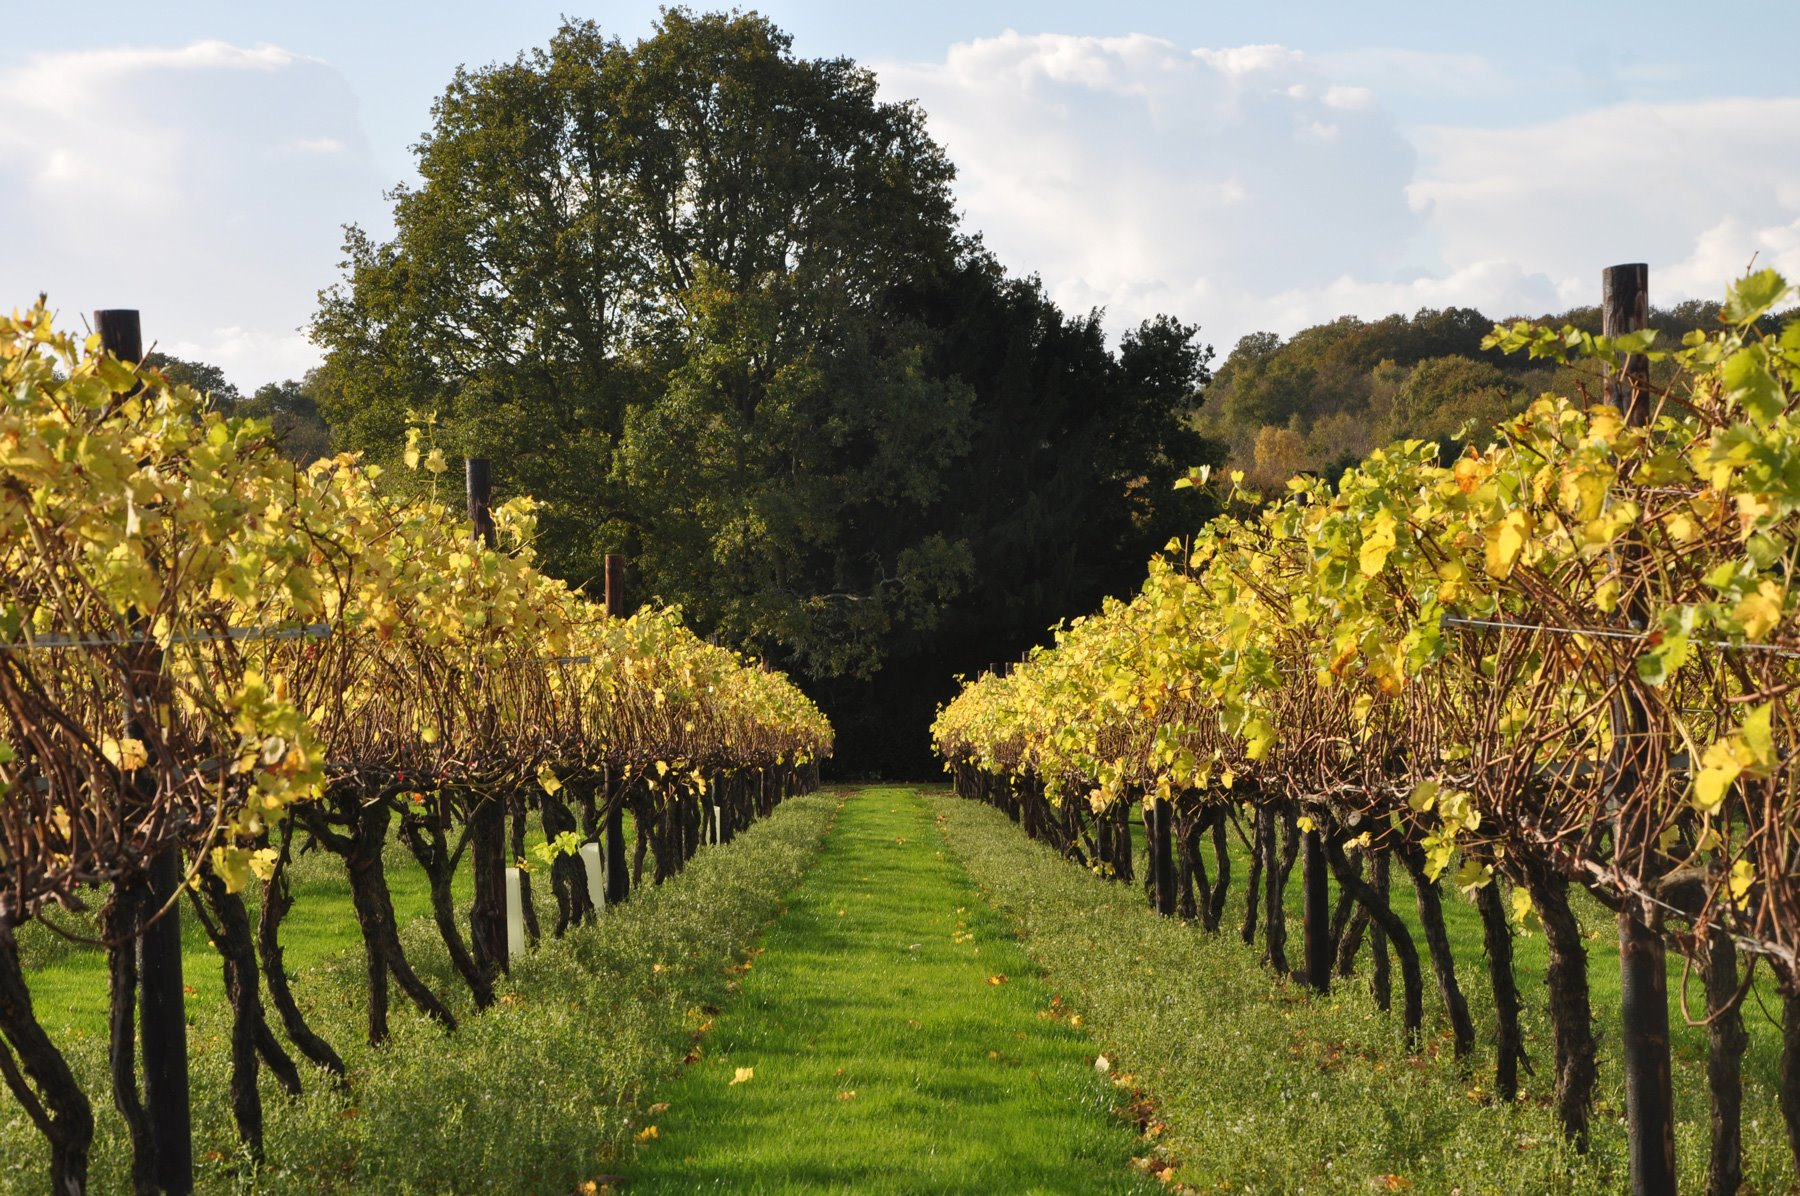 Autumn-at-Biddenden-Vineyard. Vinos, sidras, zumo de manzana y Ortega en Biddenden Vineyards